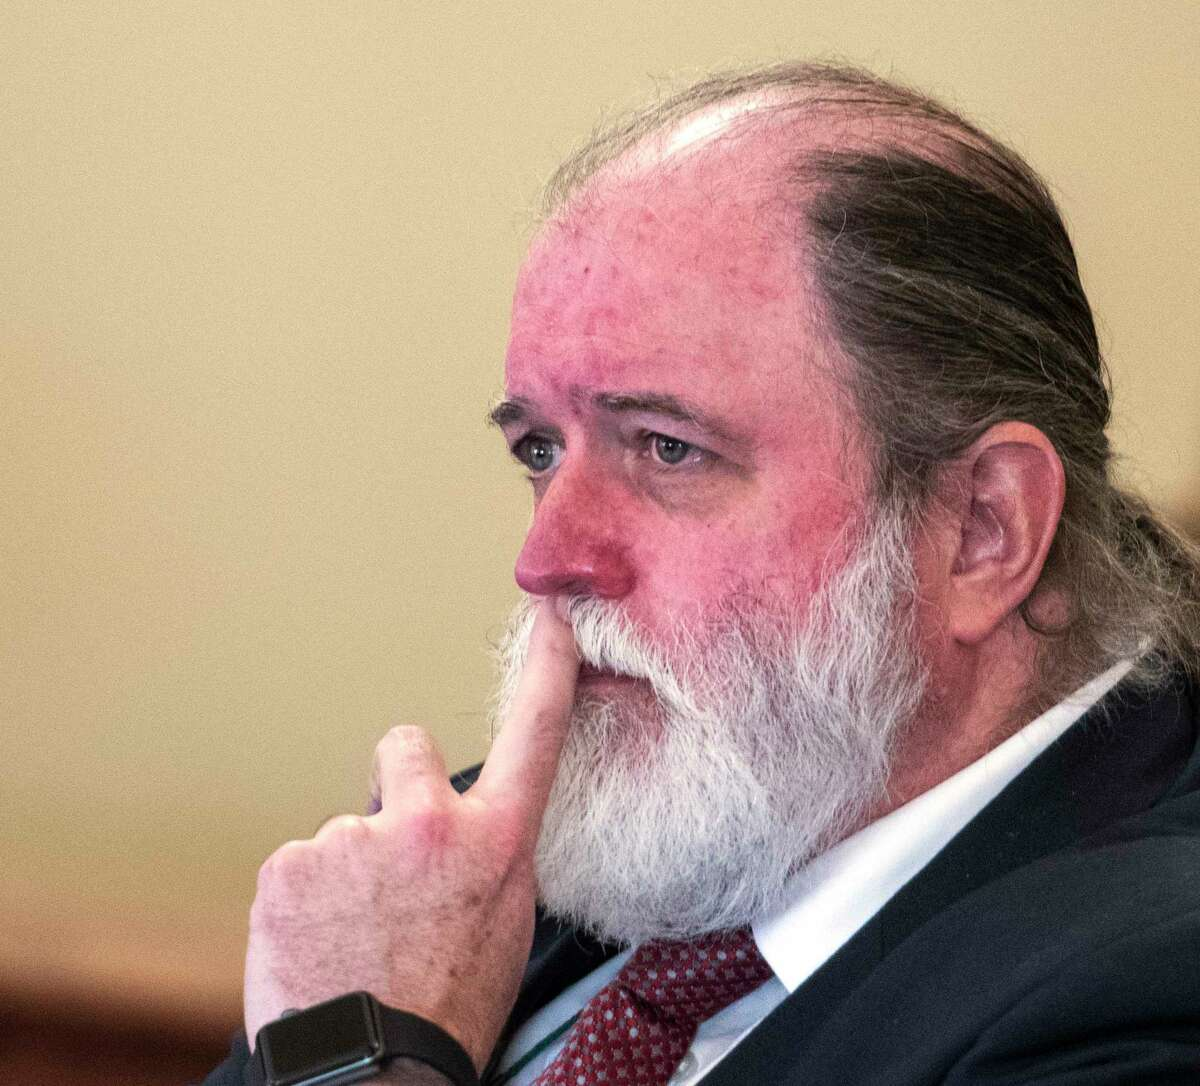 Mike McDermott, attorney for Richard J. Wright who was sentenced for arson and double homicide 30 years ago sits in Rensselaer County Court where his client was granted a retrial as a result of new evidence by Judge Andrew Ceresia Monday Oct. 2, 2017 in Troy, N.Y. (Skip Dickstein/Times Union)